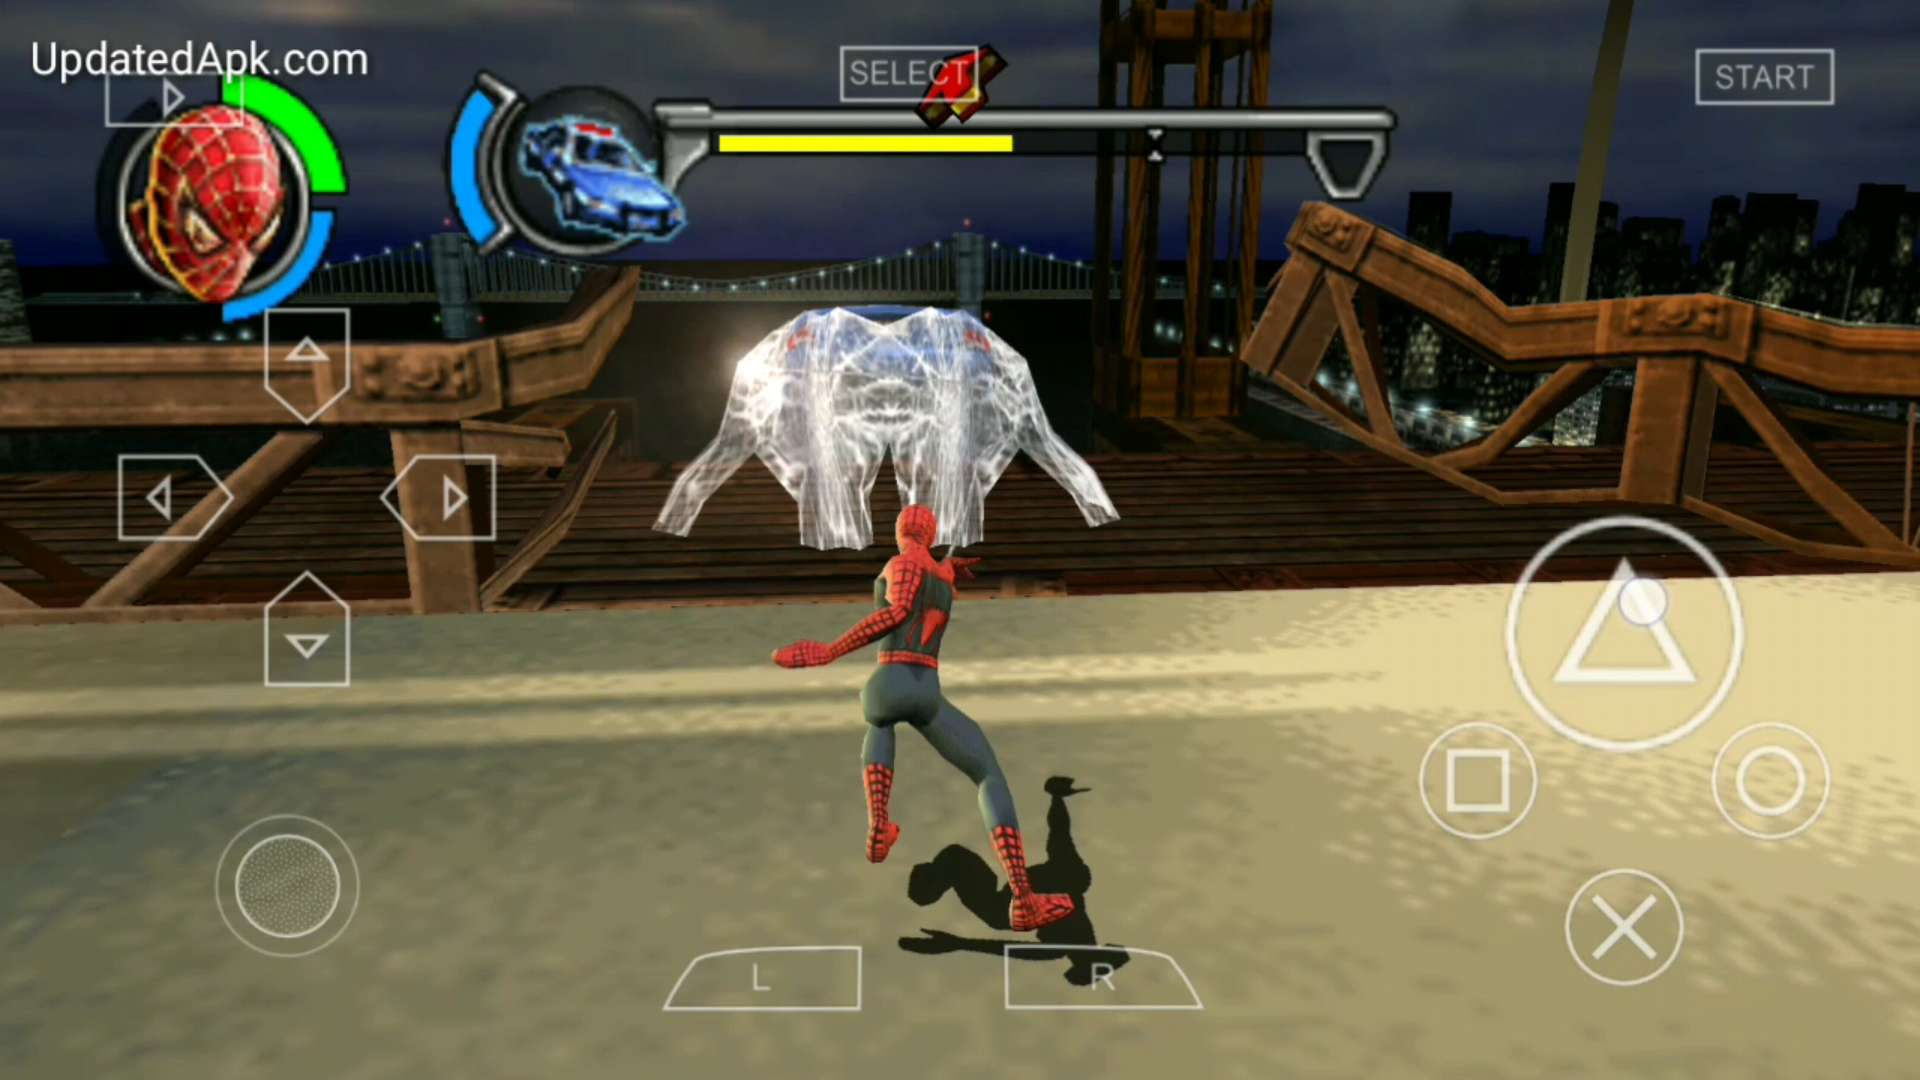 Spider Man 2 ppsspp Compressed - PPSSPP Games Highly Compressed (Top 35 Games)